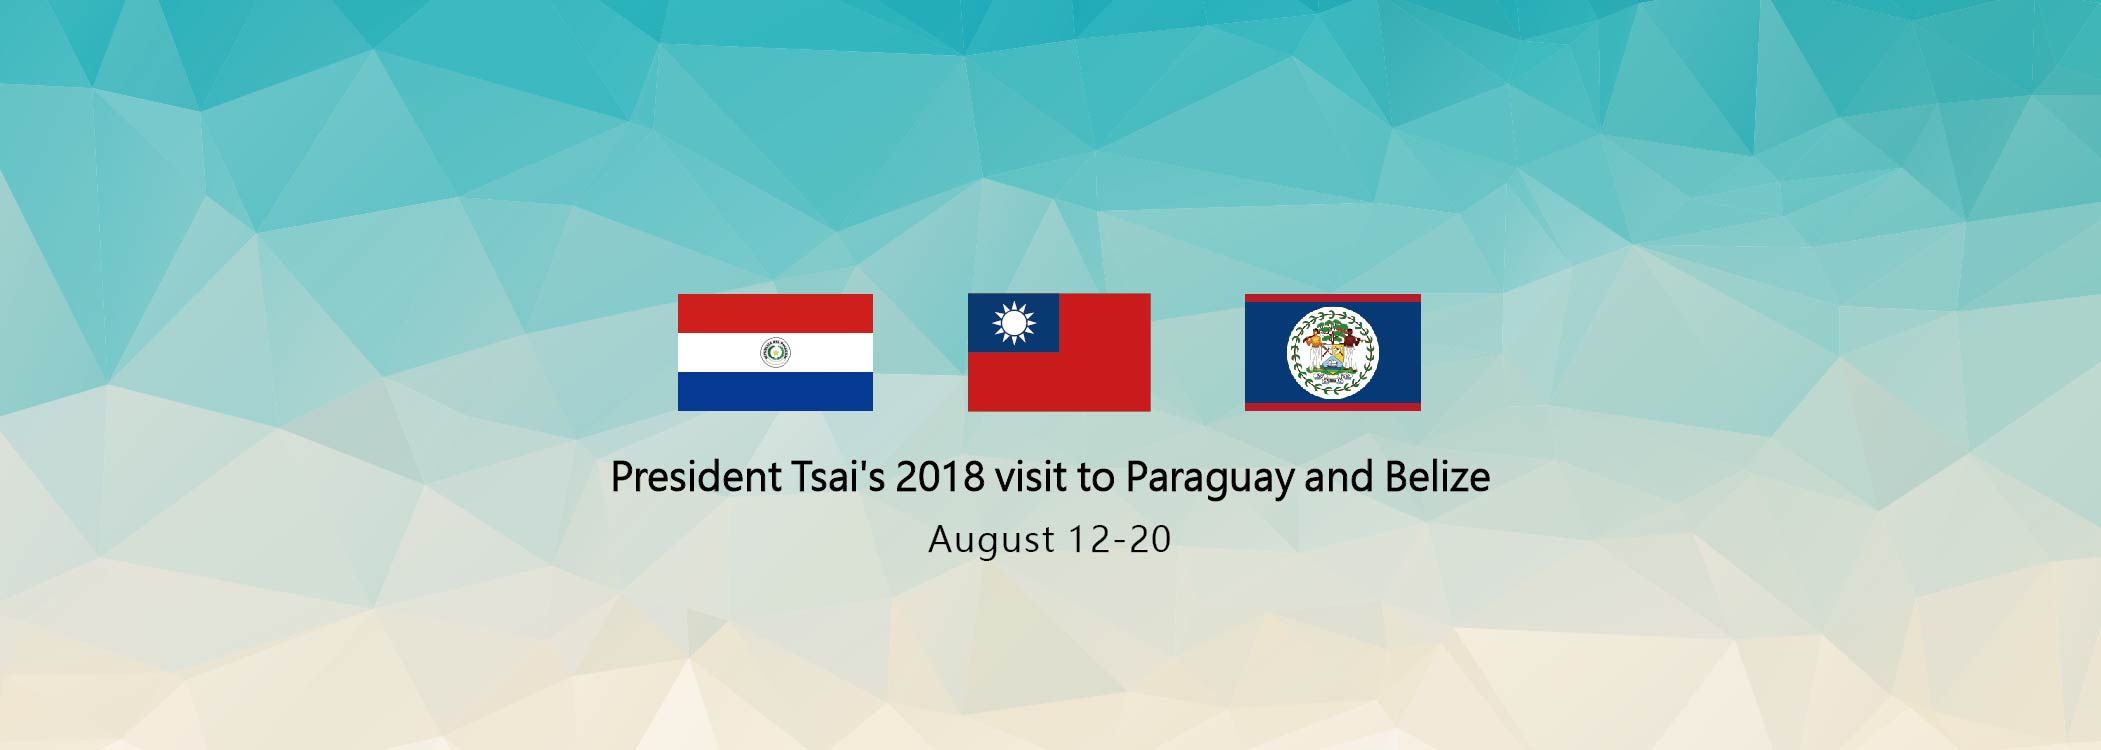 President Tsai's 2018 visit to Paraguay and Belize